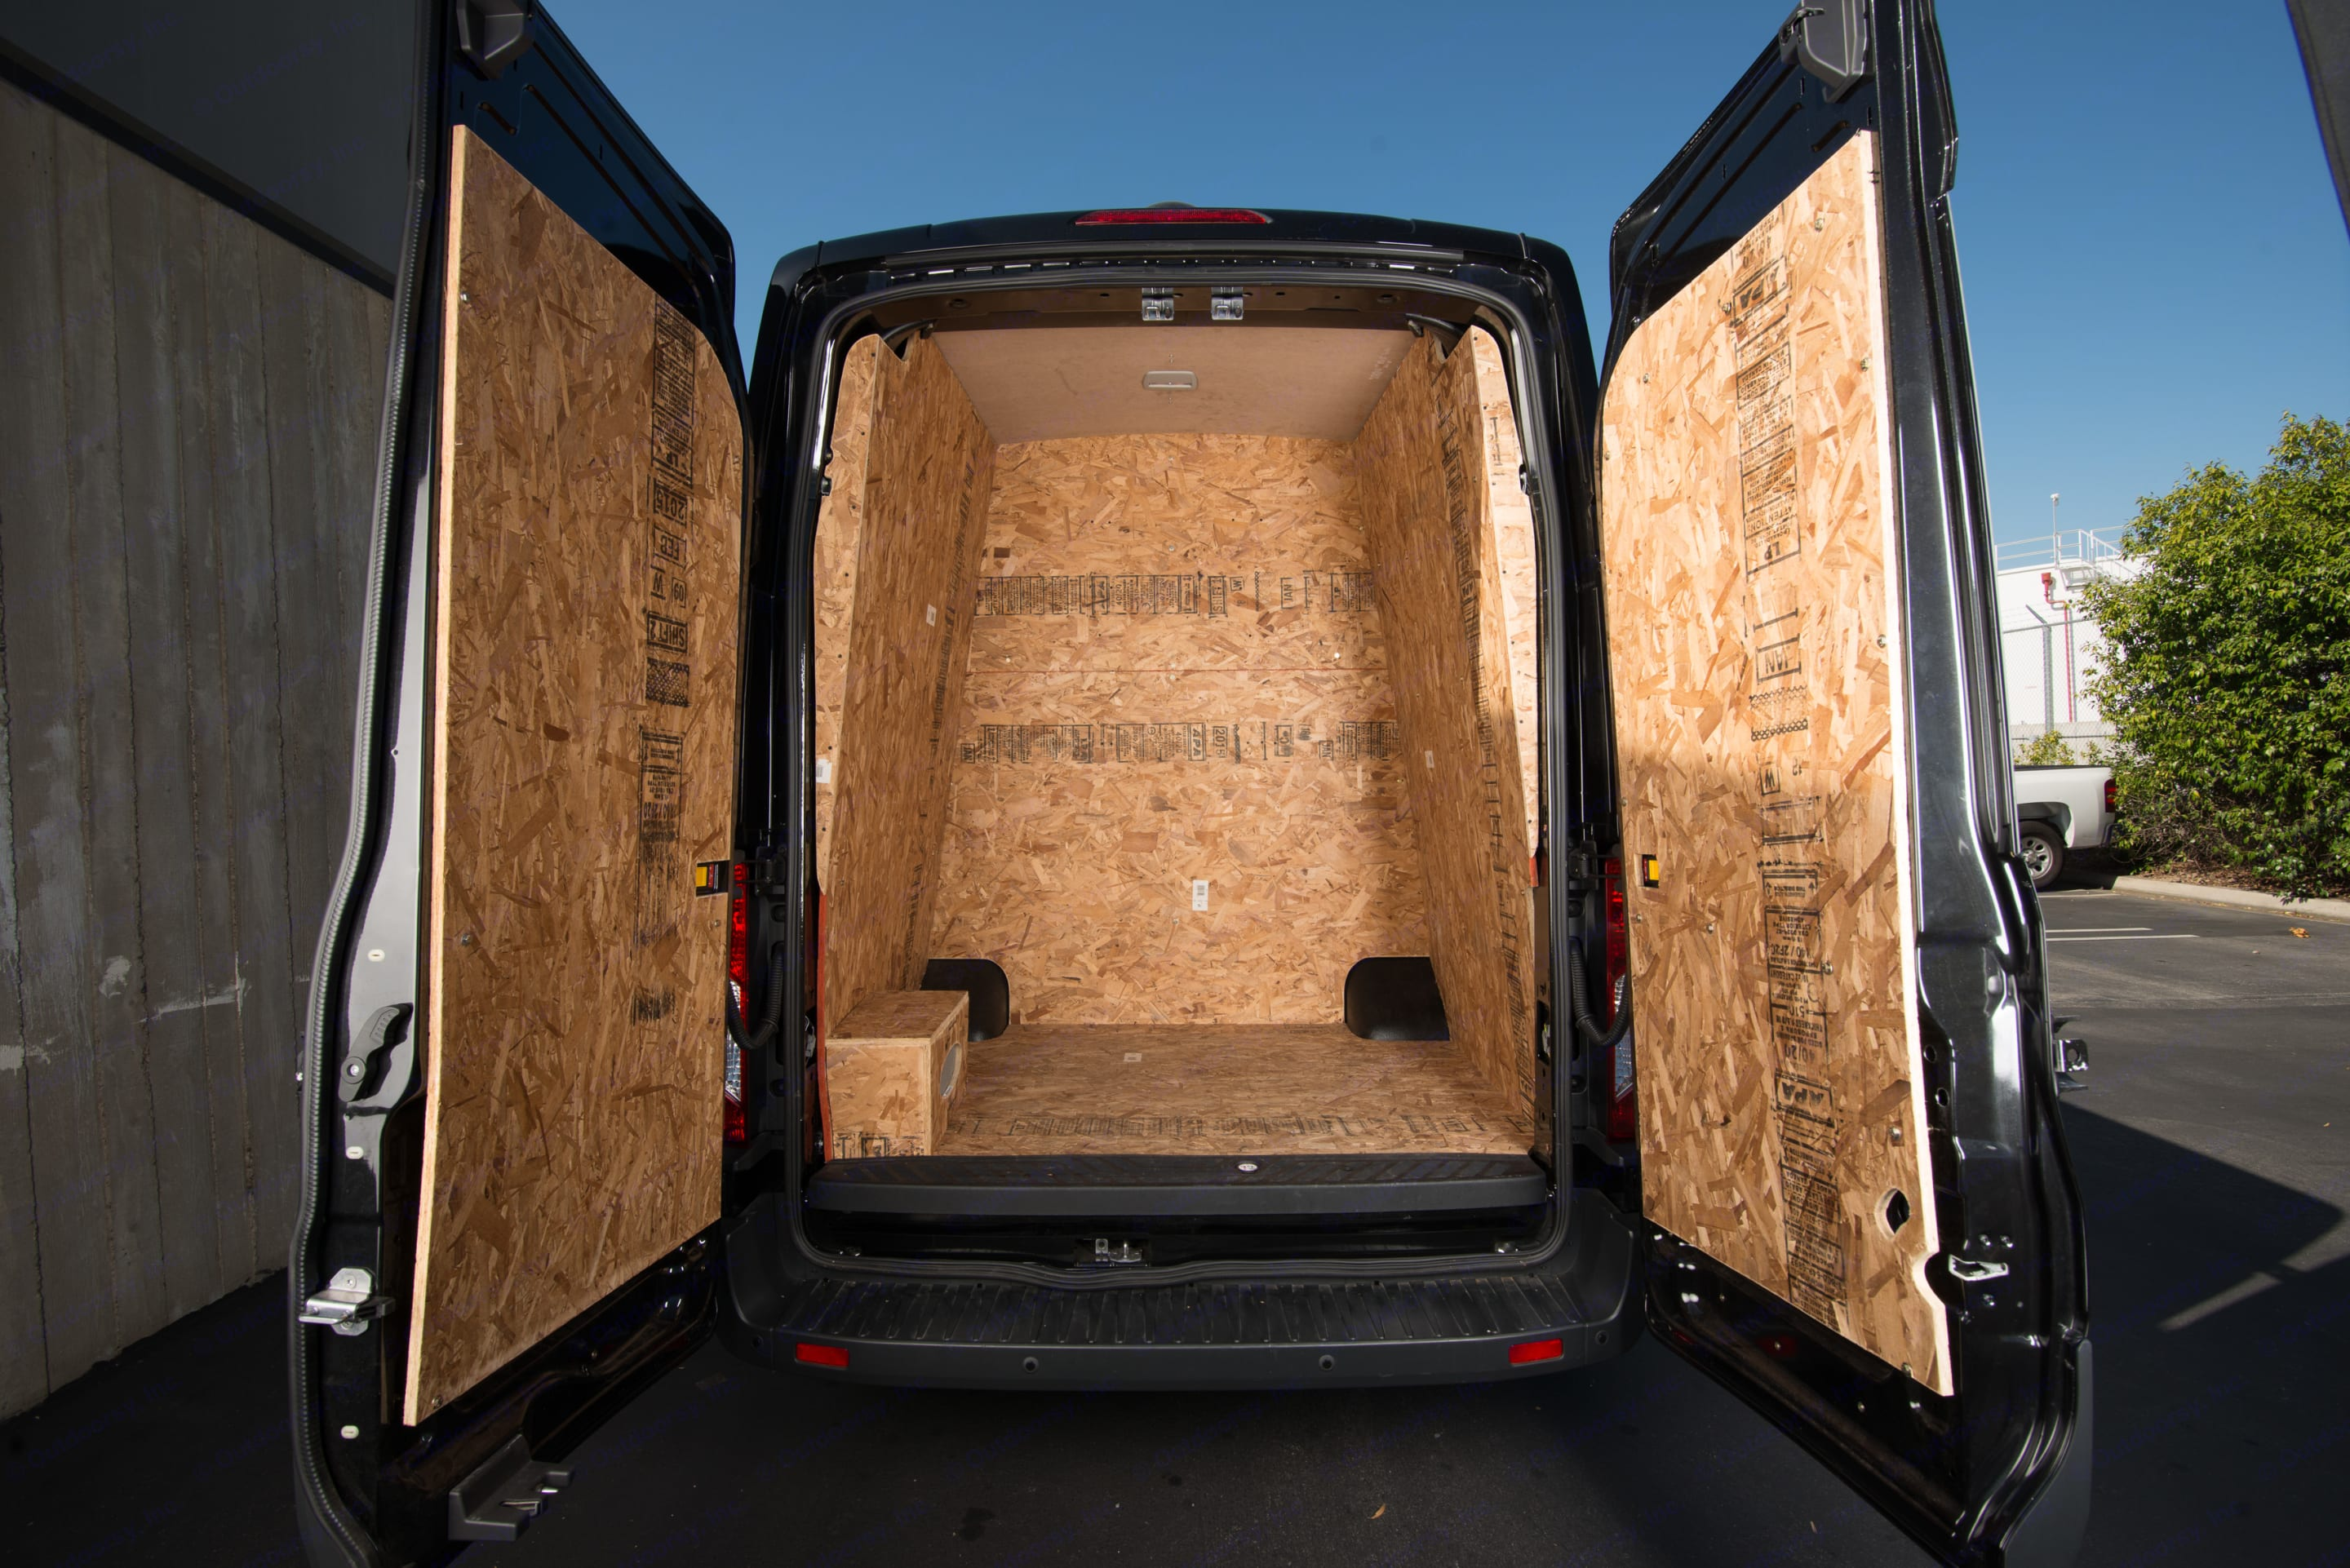 150 Sq Ft of protected storage. Ford Transit 350 HD 2015